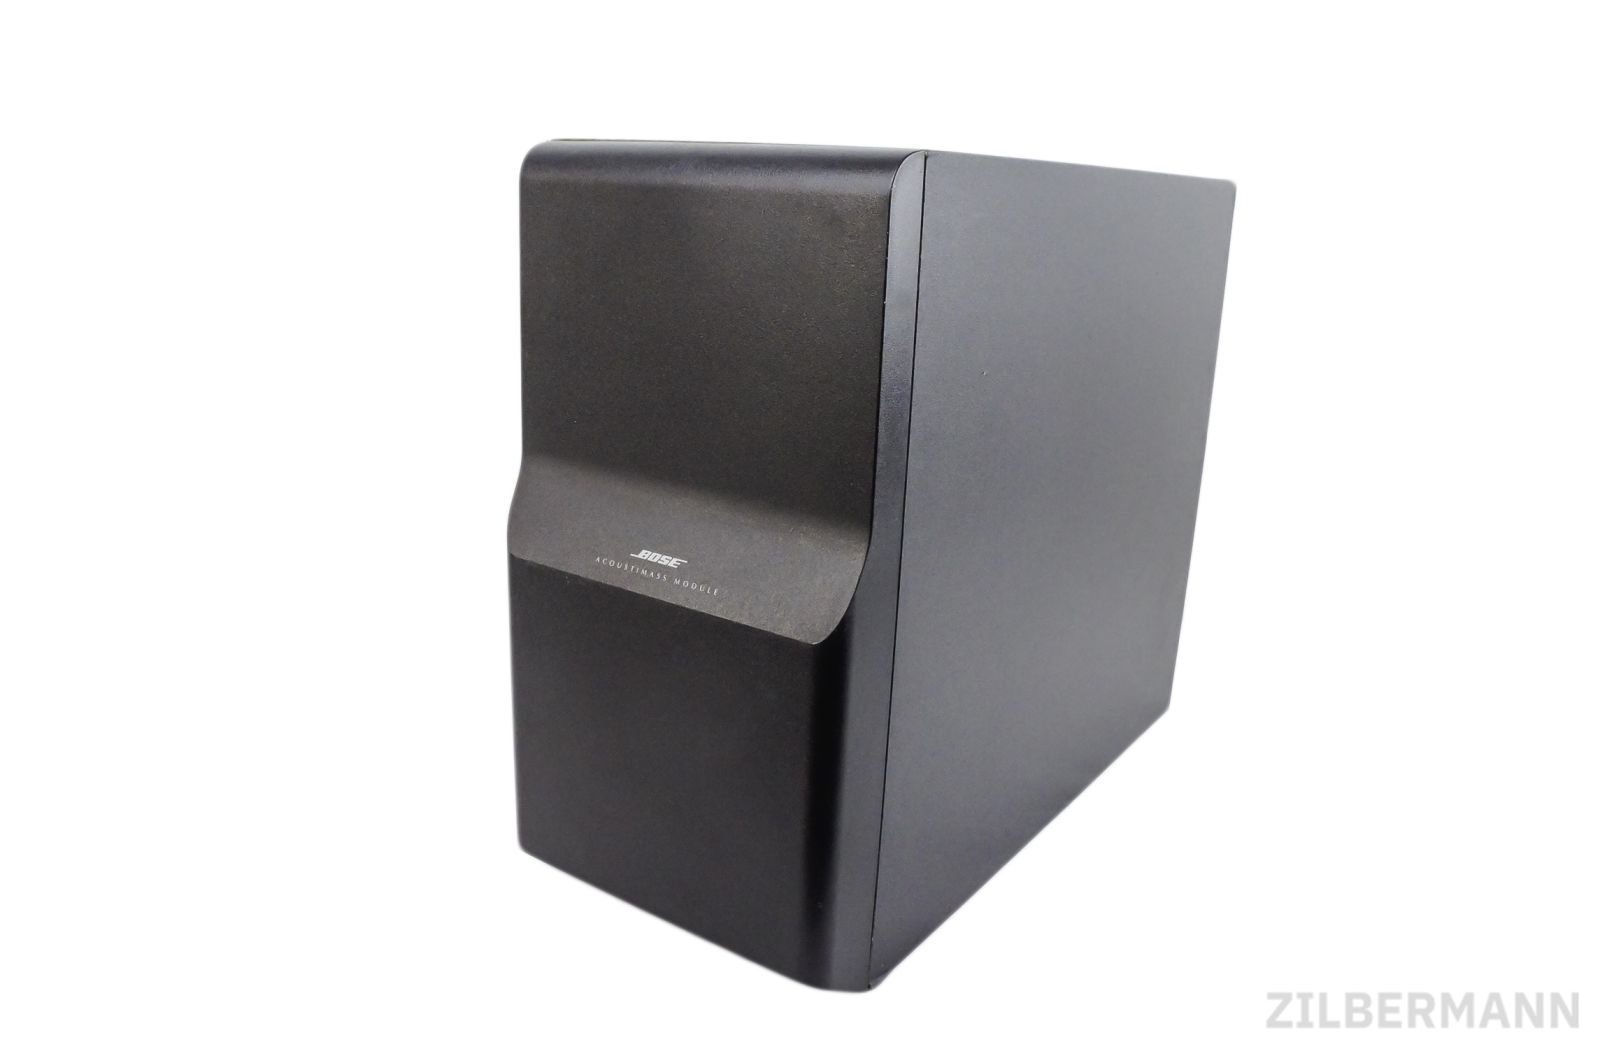 Bose_Acoustimass_6_Series_II_5.1_Subwoofer_03